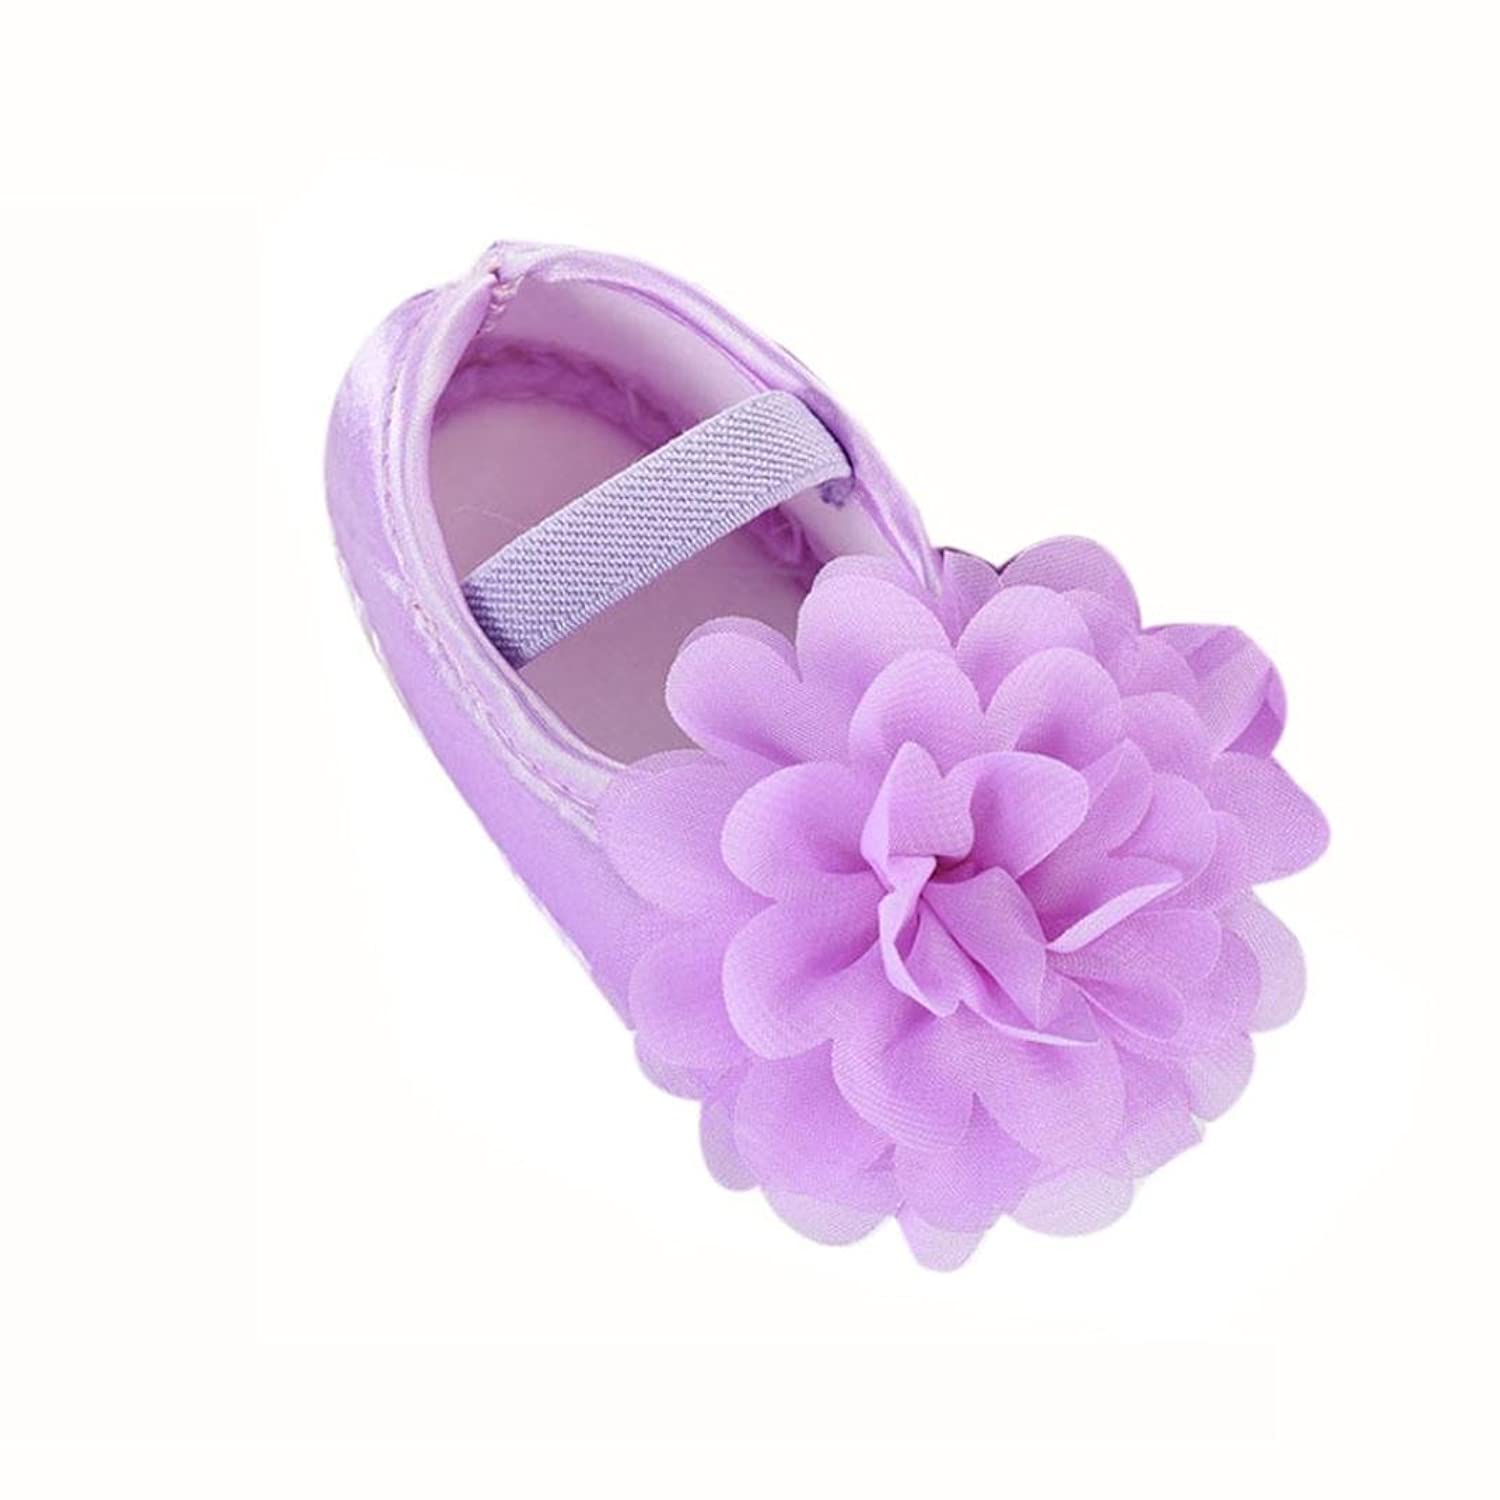 Boomboom Baby Sandals 2018 Toddler Girl Chiffon Flower Elastic Pomade Tokyo Night Lavender Red Band Walking Shoes 60